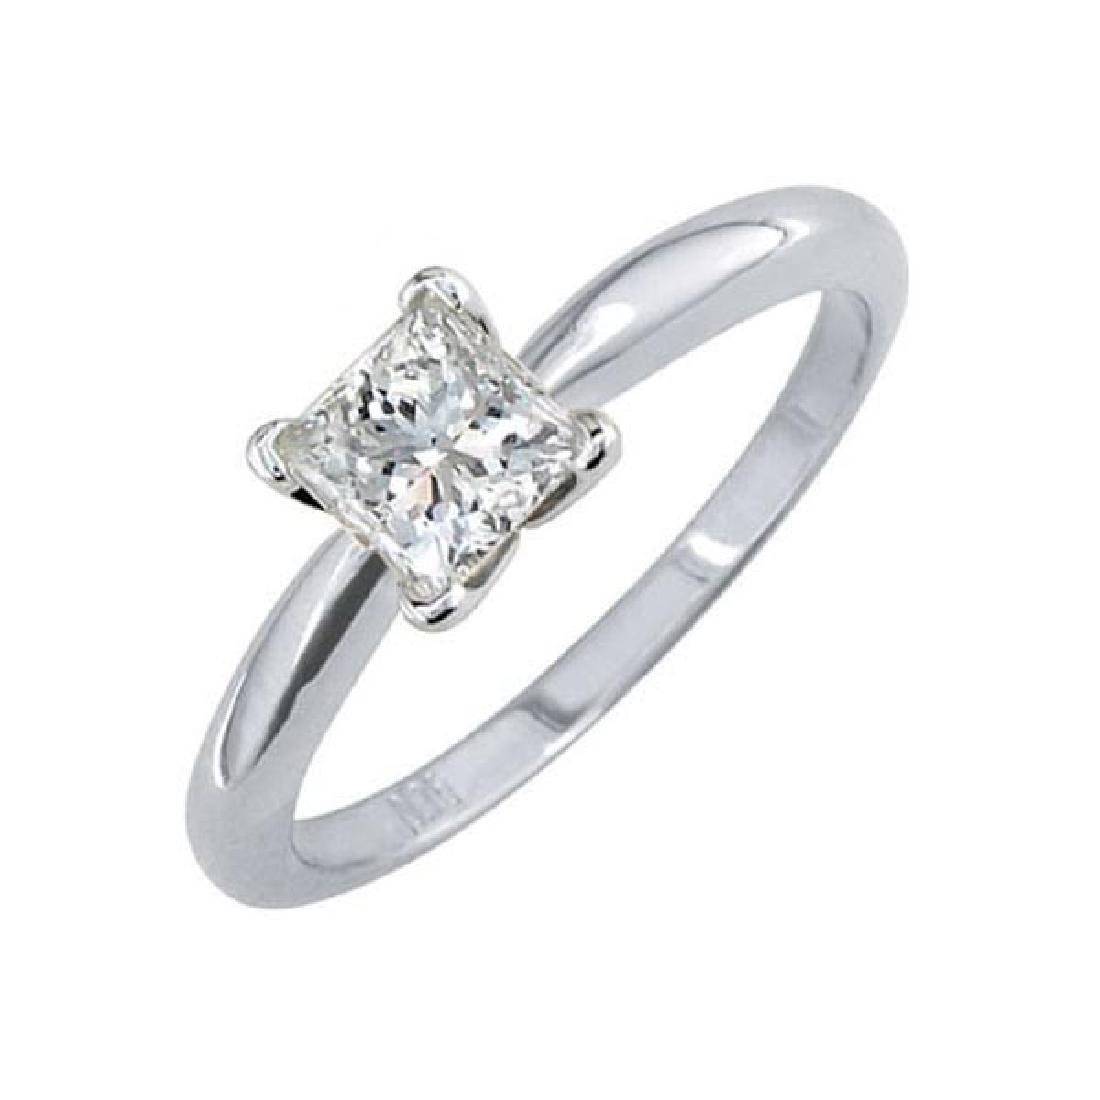 Certified 1.1 CTW Princess Diamond Solitaire 14k Ring G